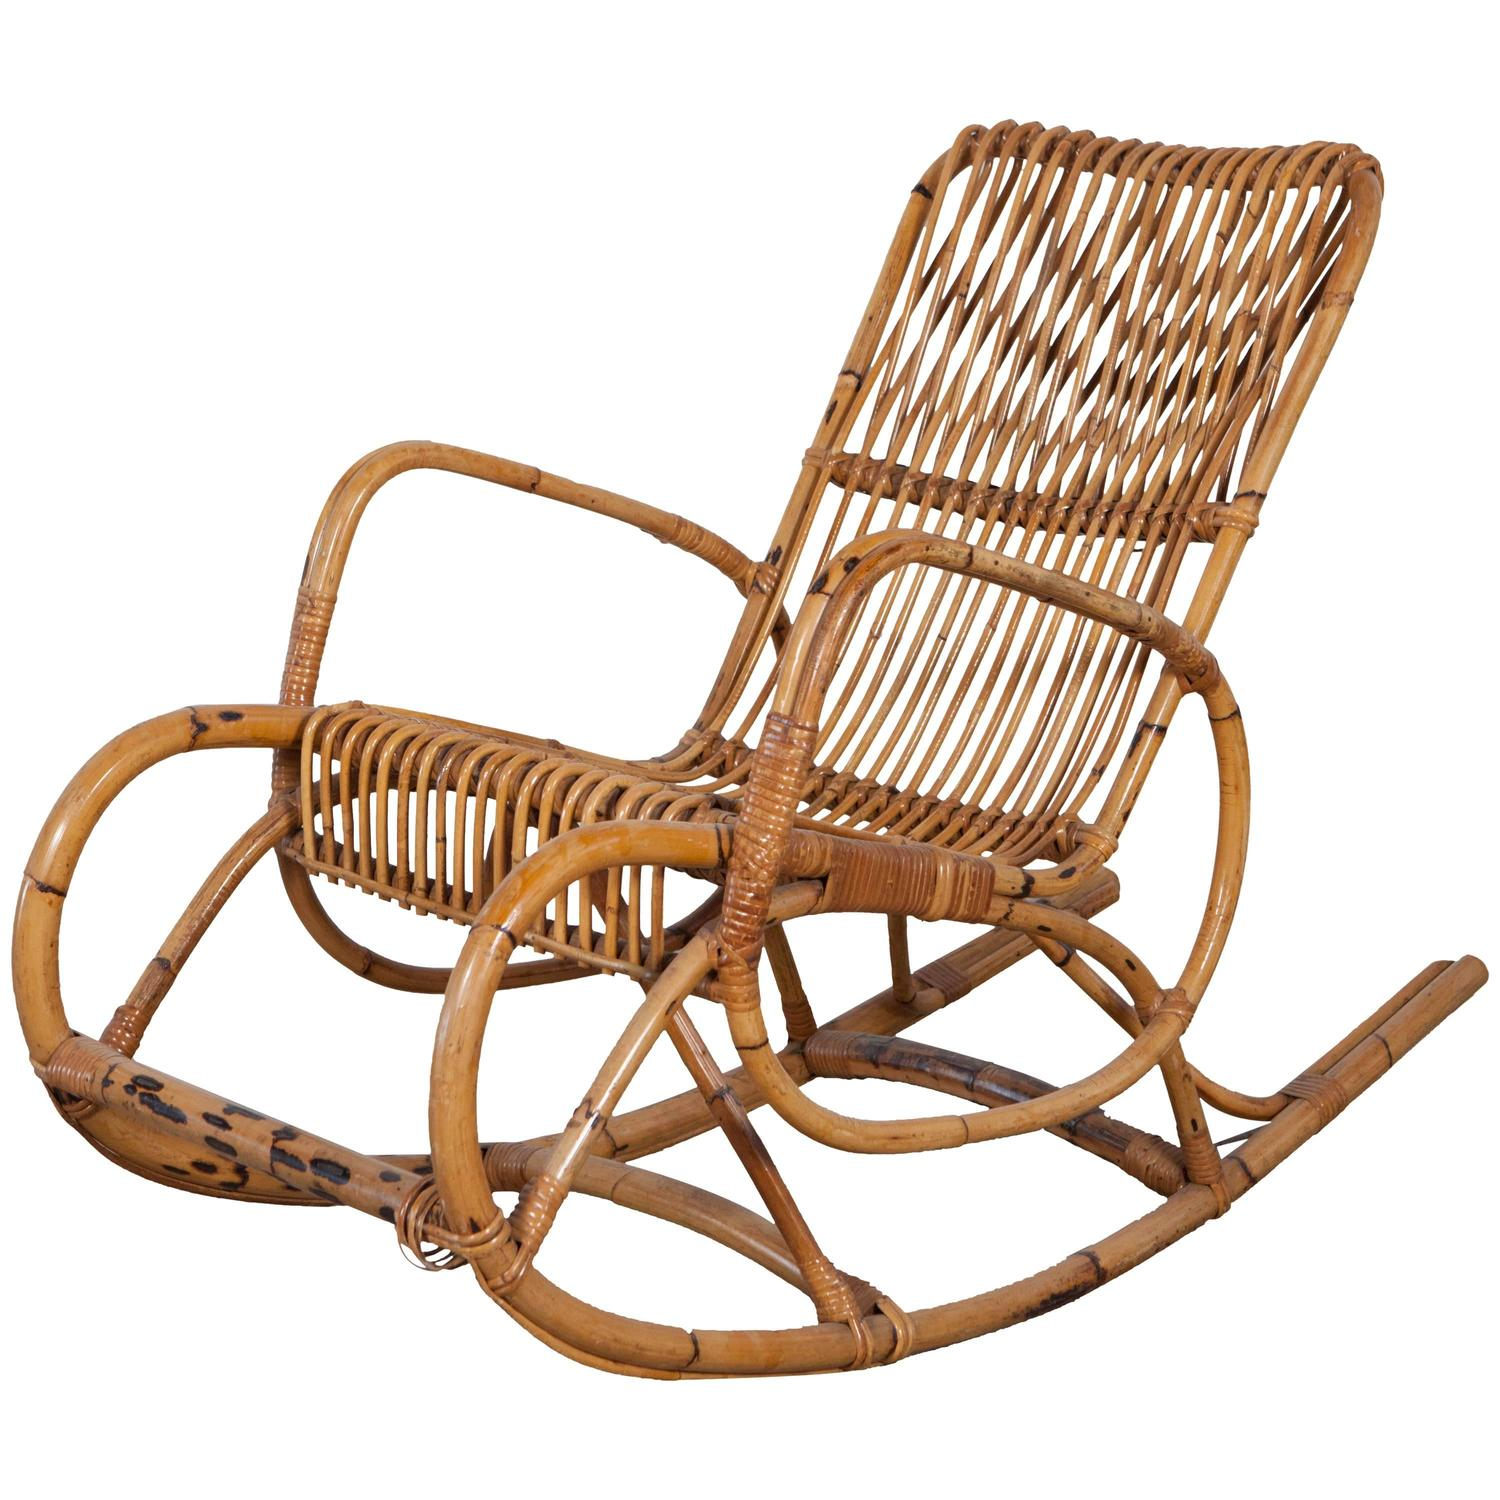 Antique Rocking Chair Vintage Italian Bamboo Rocking Chair With Square Arms For